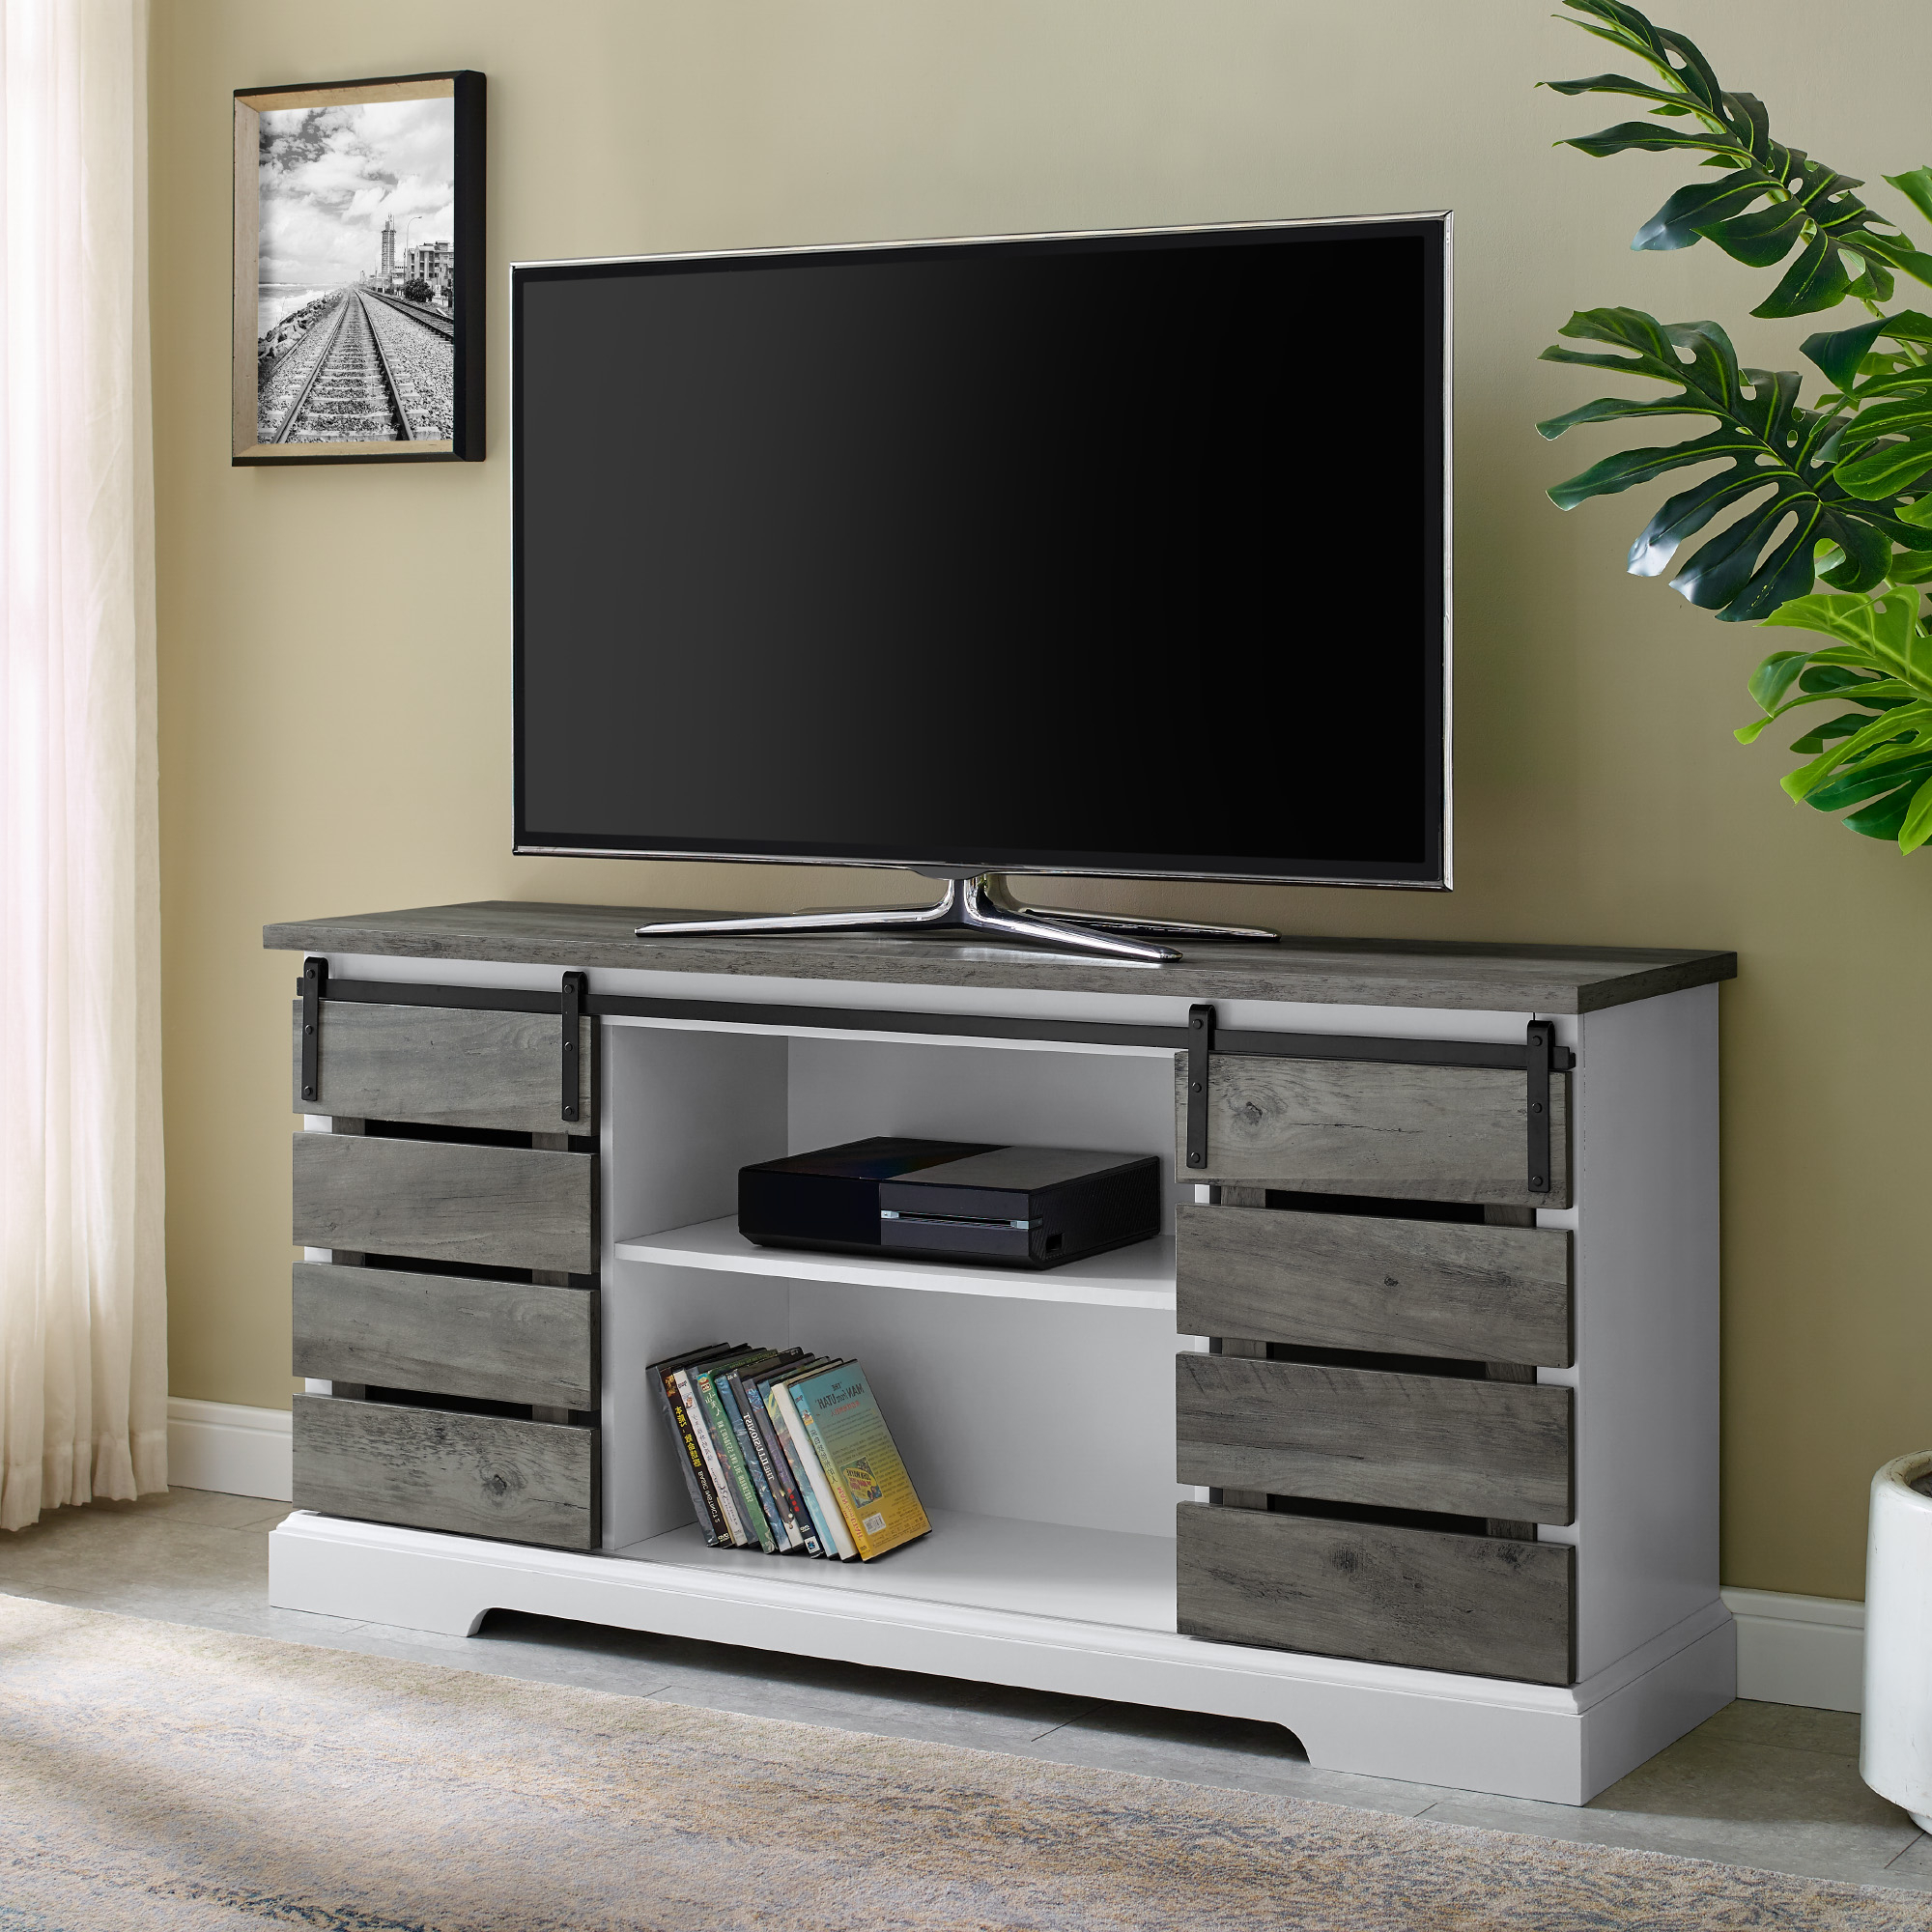 Woven Paths Farmhouse Sliding Slat Door Tv Stand For Tvs Within Woven Paths Barn Door Tv Stands In Multiple Finishes (View 2 of 20)